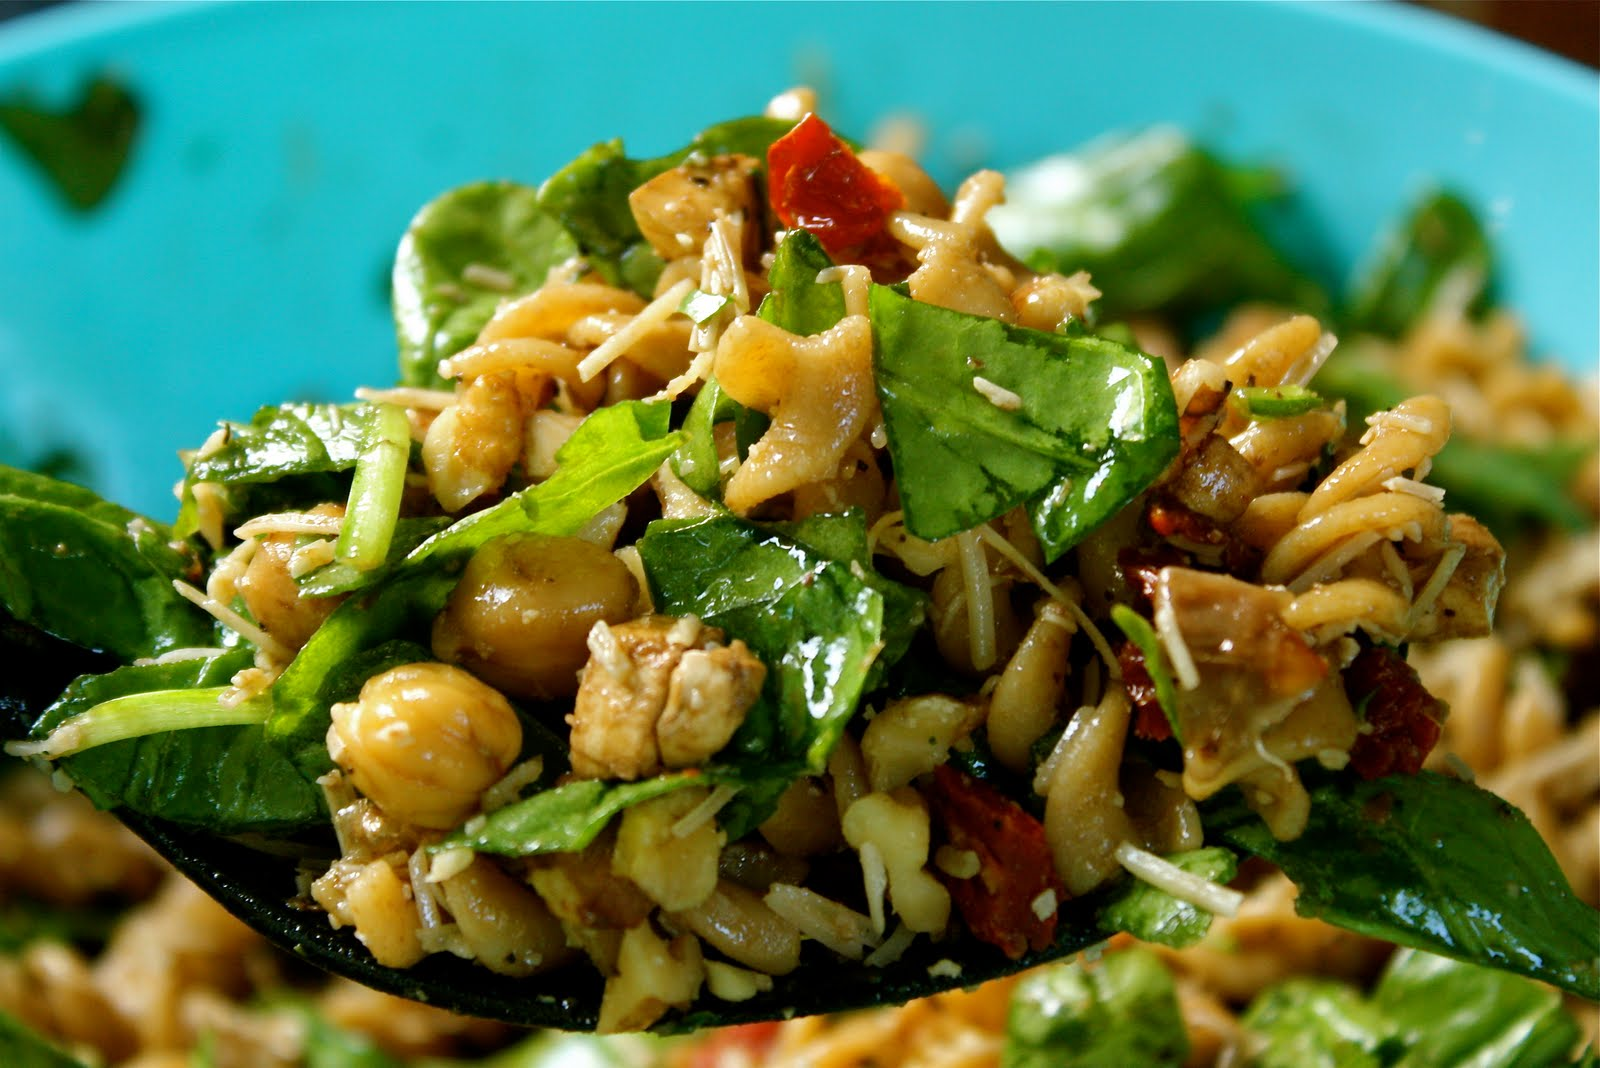 Chickpea Pasta with Spinach, Sun Dried Tomatoes, and Walnuts